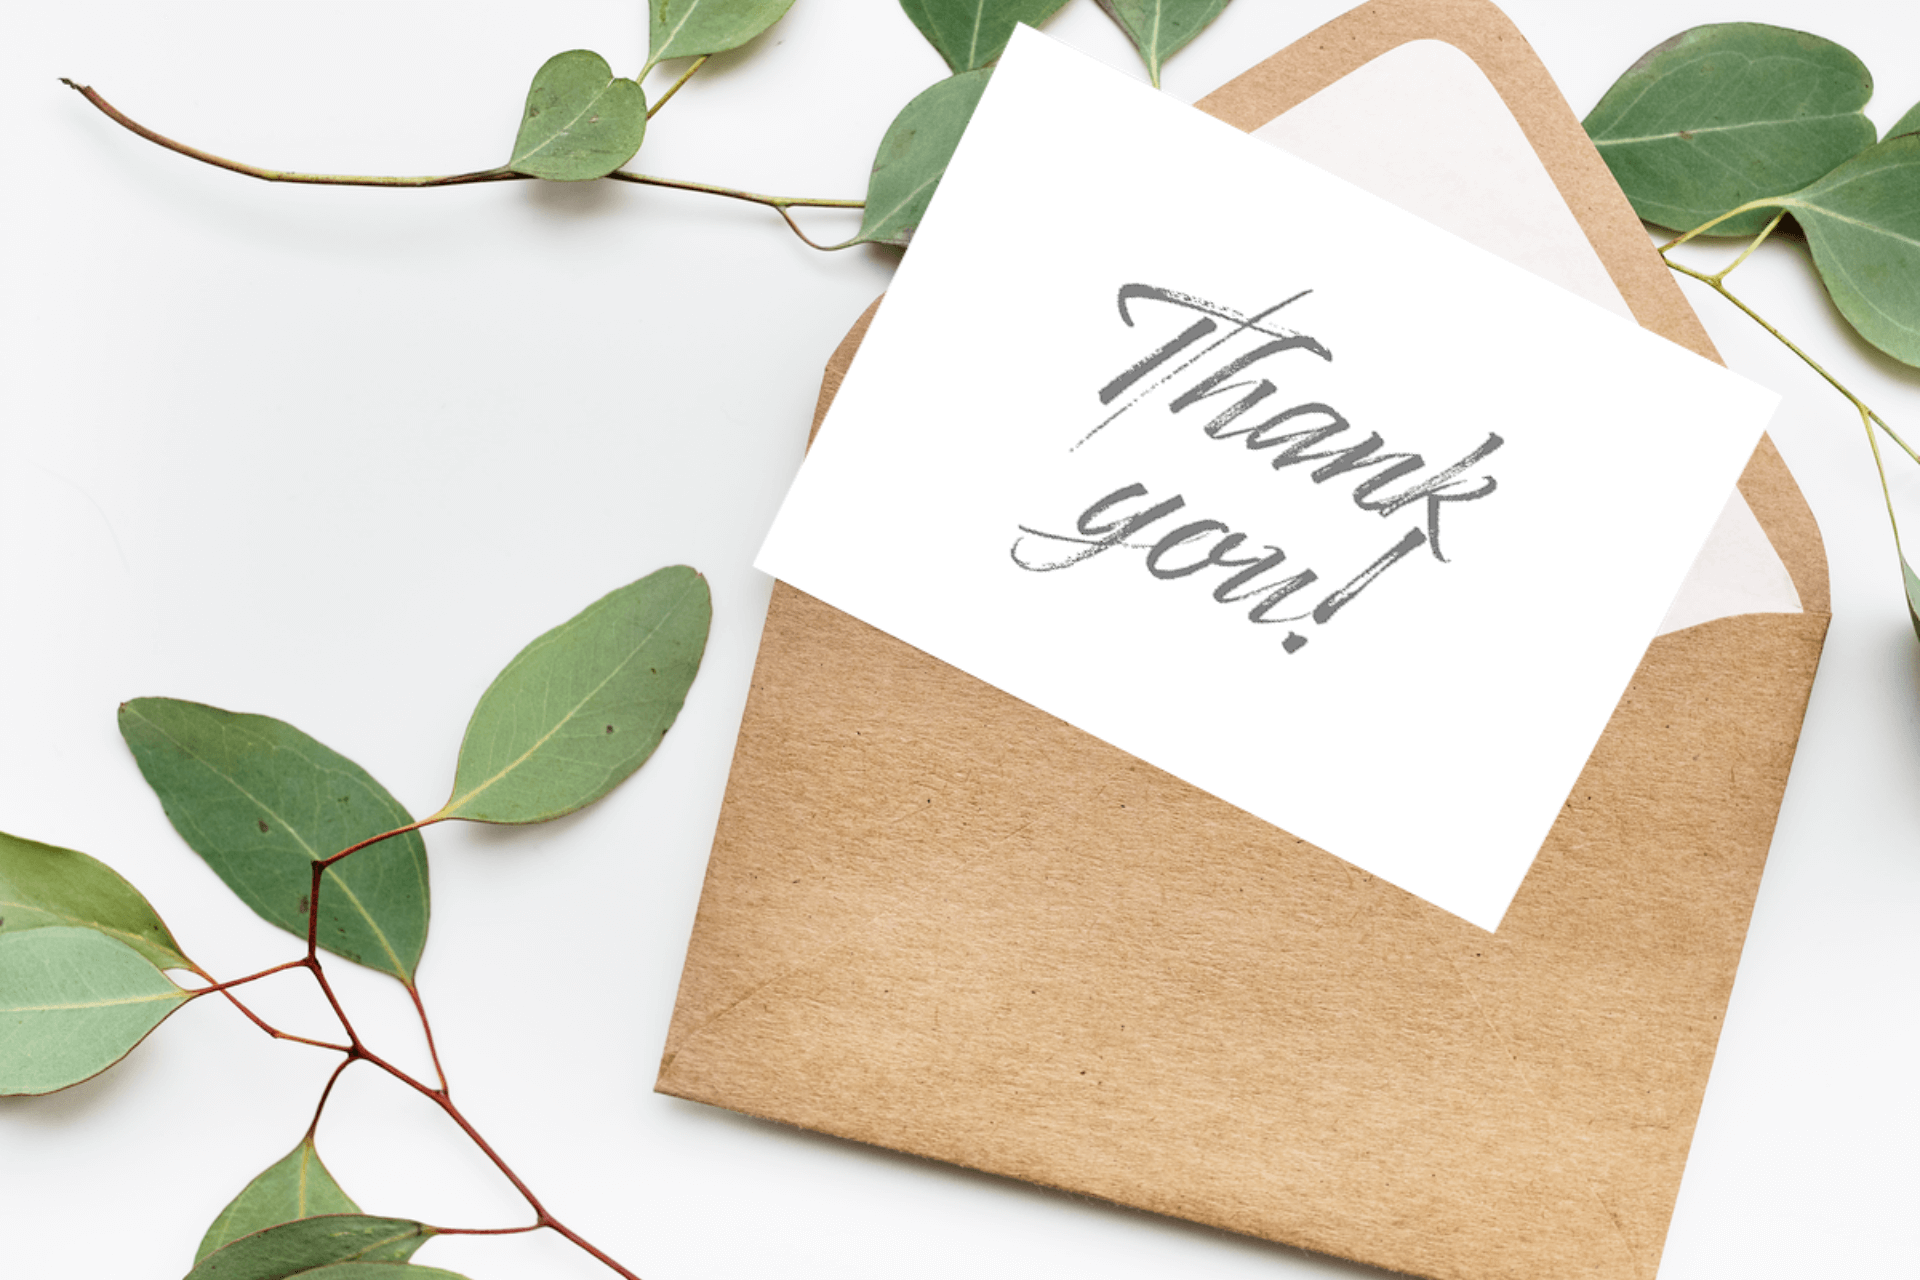 15 Creative Ways to Incentivize or Thank Fundraisers